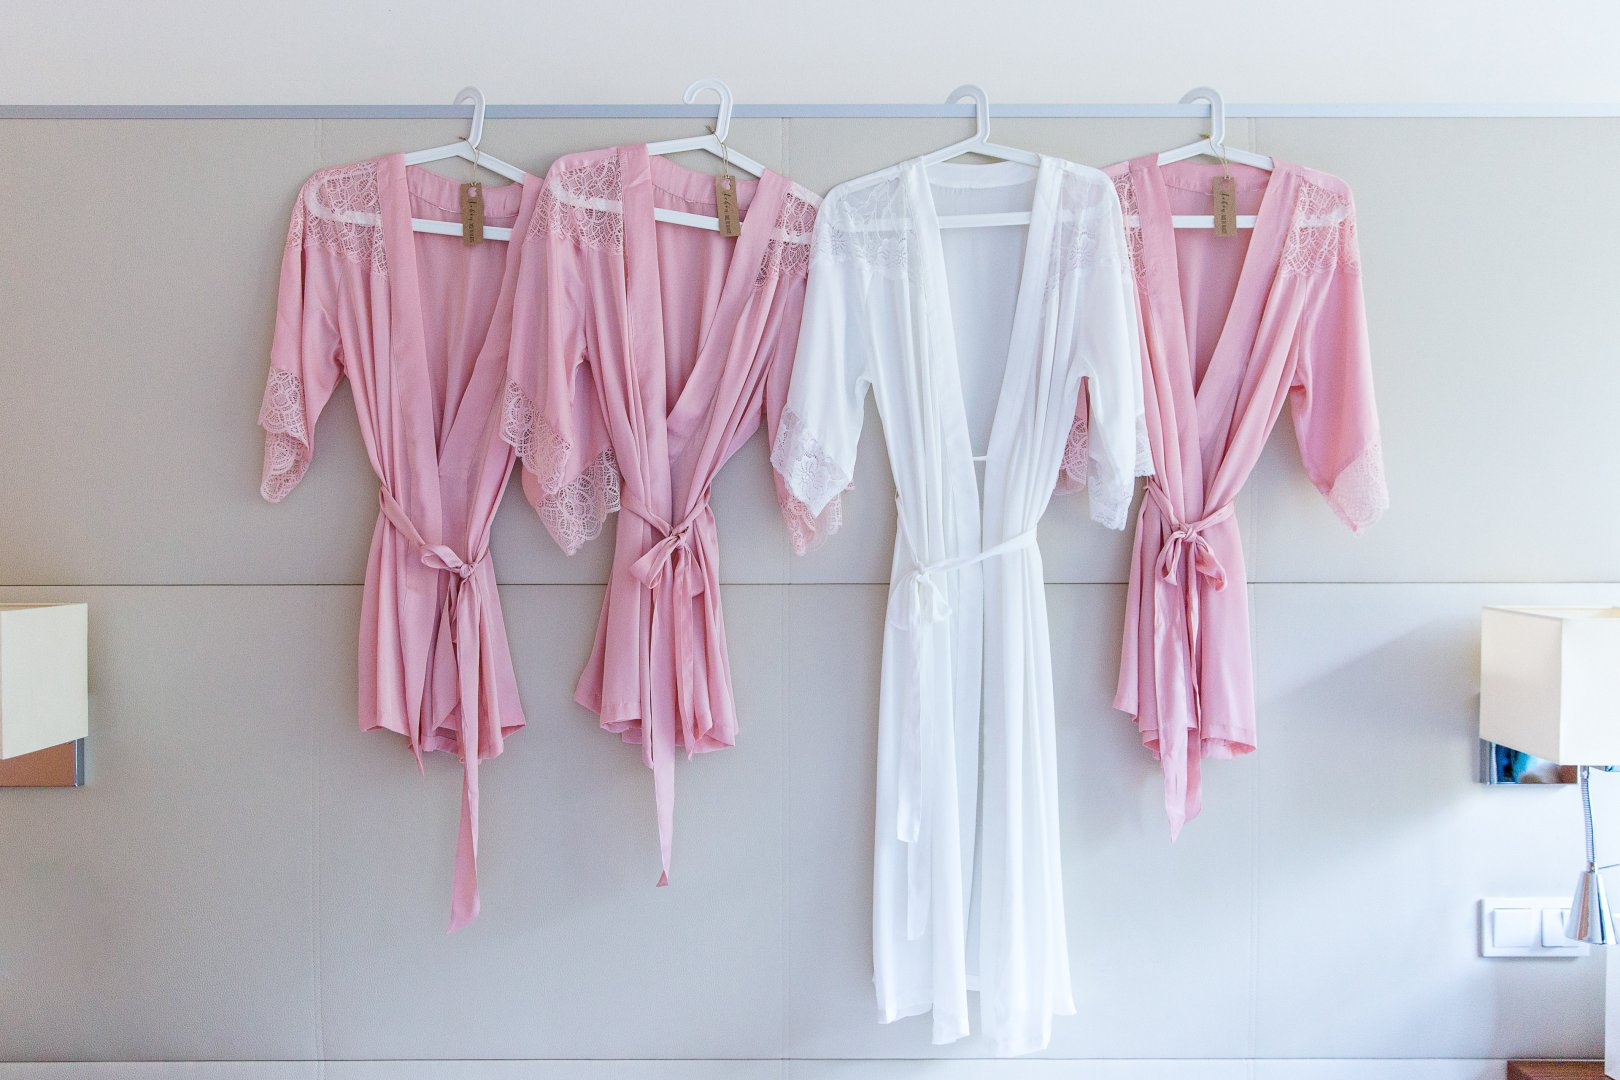 Clothes hanger Pink White Clothing Room Outerwear Home accessories Furniture Nightwear